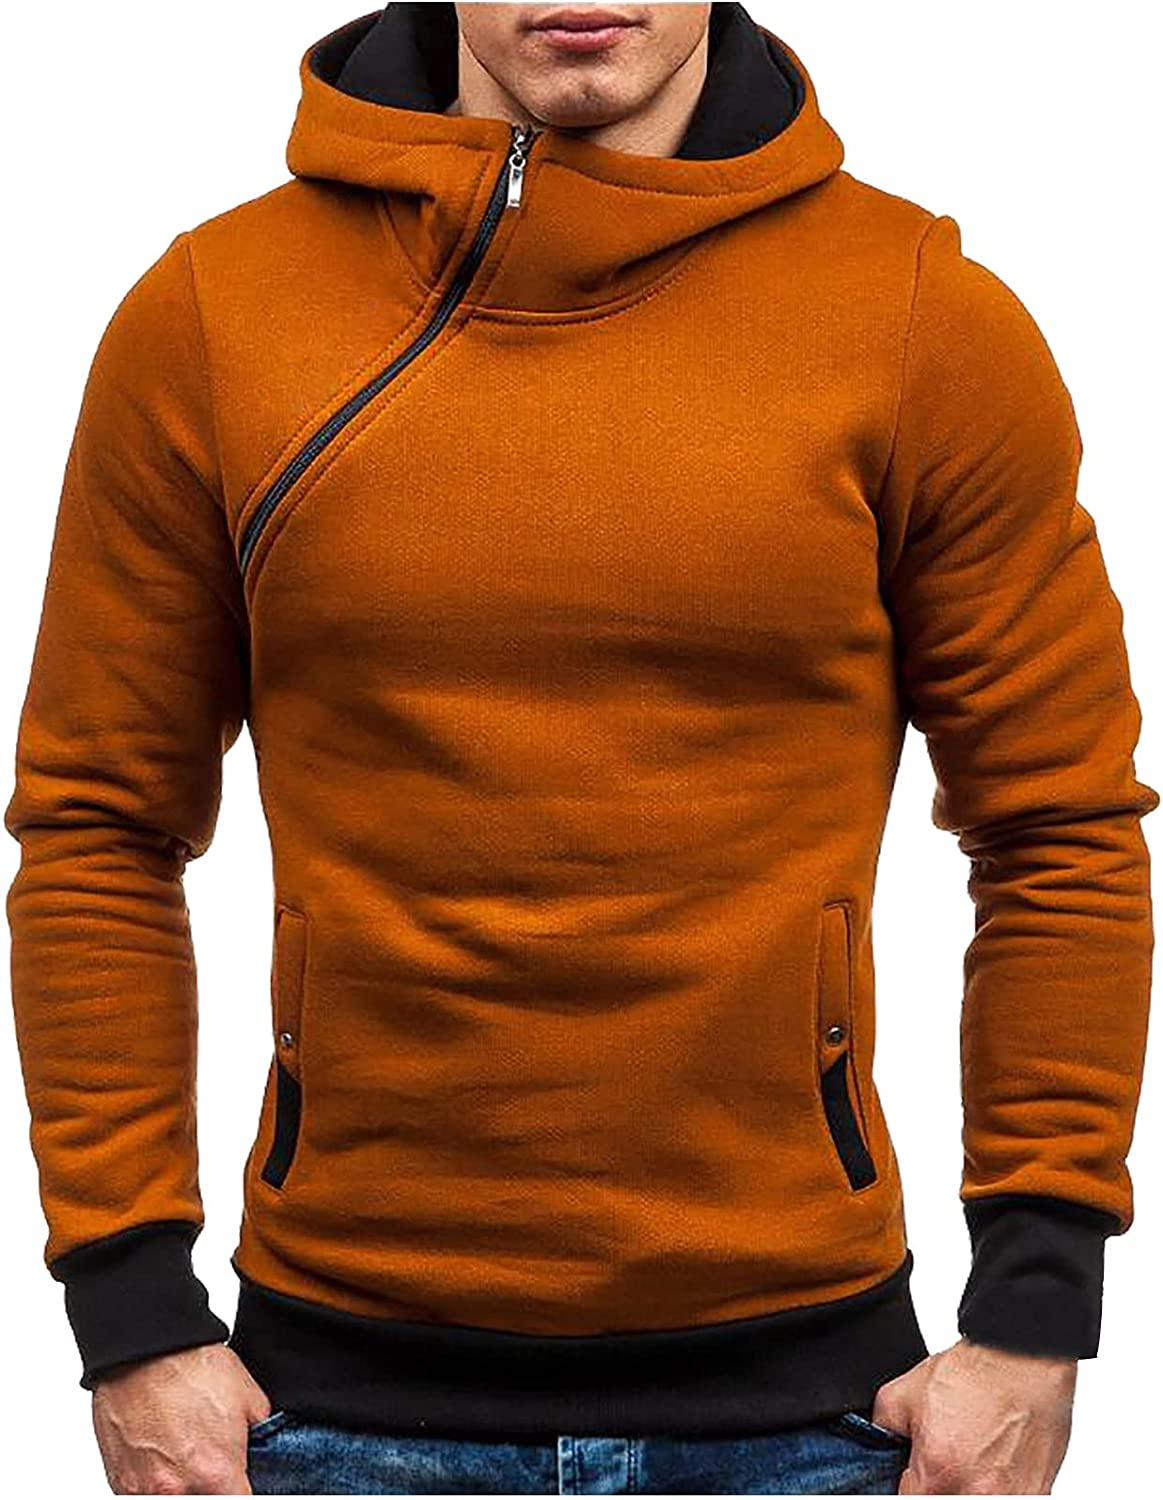 Hoodies for Men Twill Zipper Pullover Hooded Sweater Cool Design Sweatshirt with Pocket